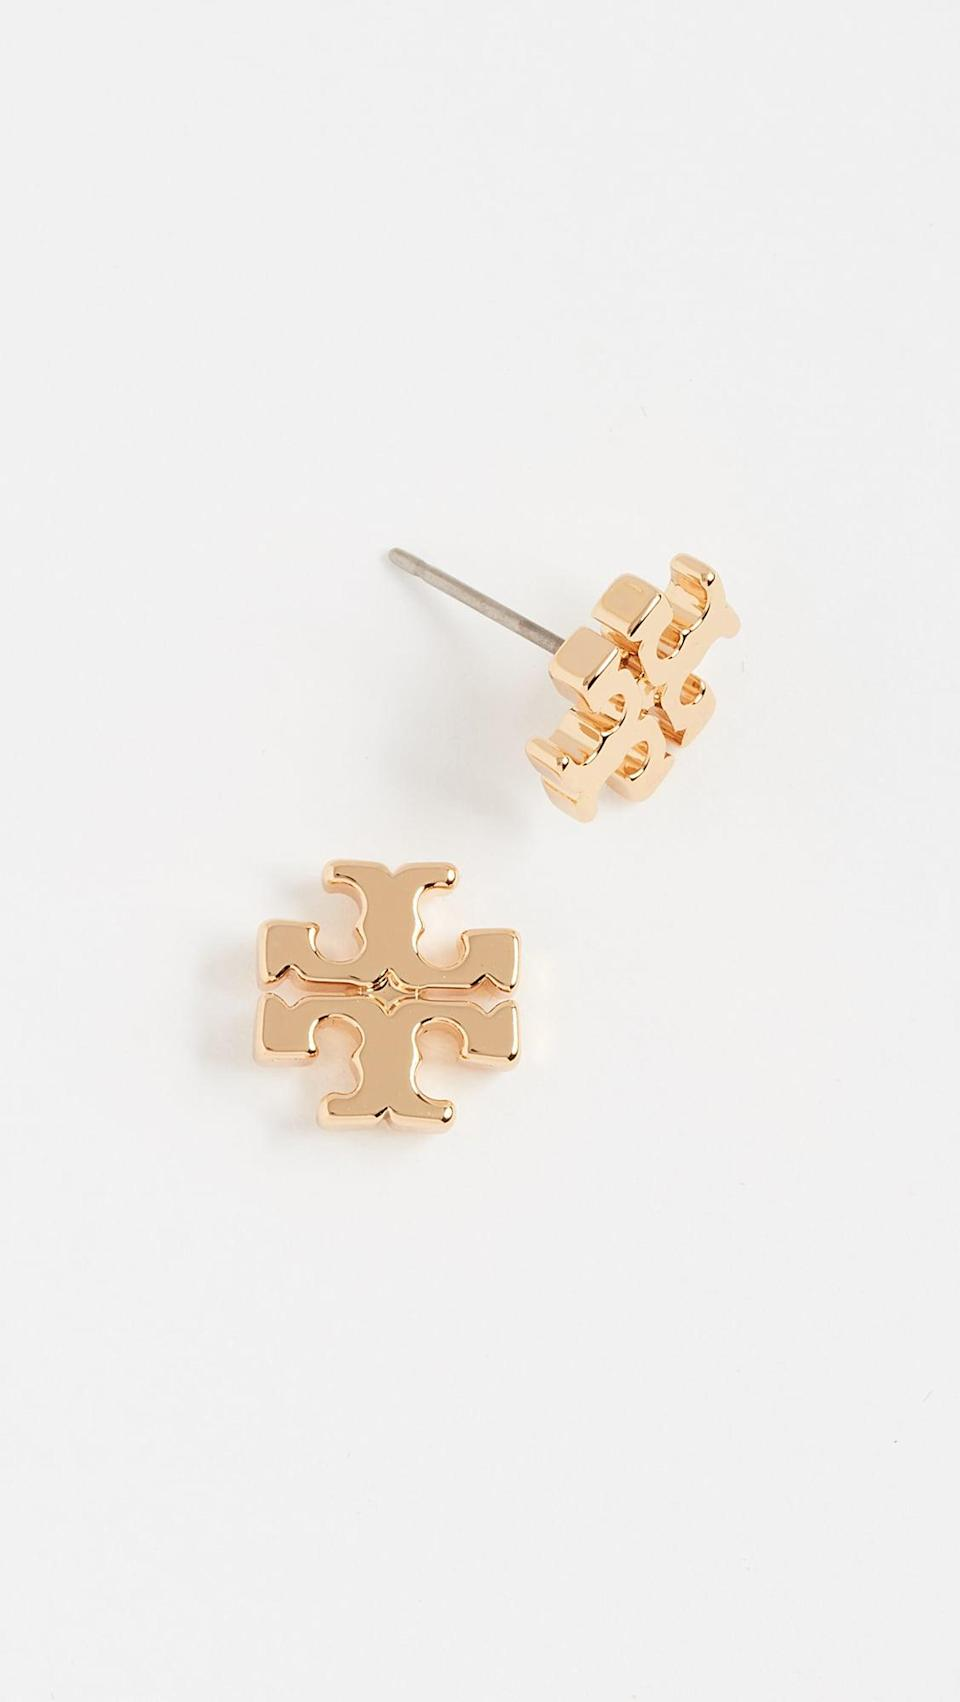 <p>Fans of Tory Burch will love these classic <span>Tory Burch Logo Stud Earrings</span> ($78). We love the sculptural look.</p>